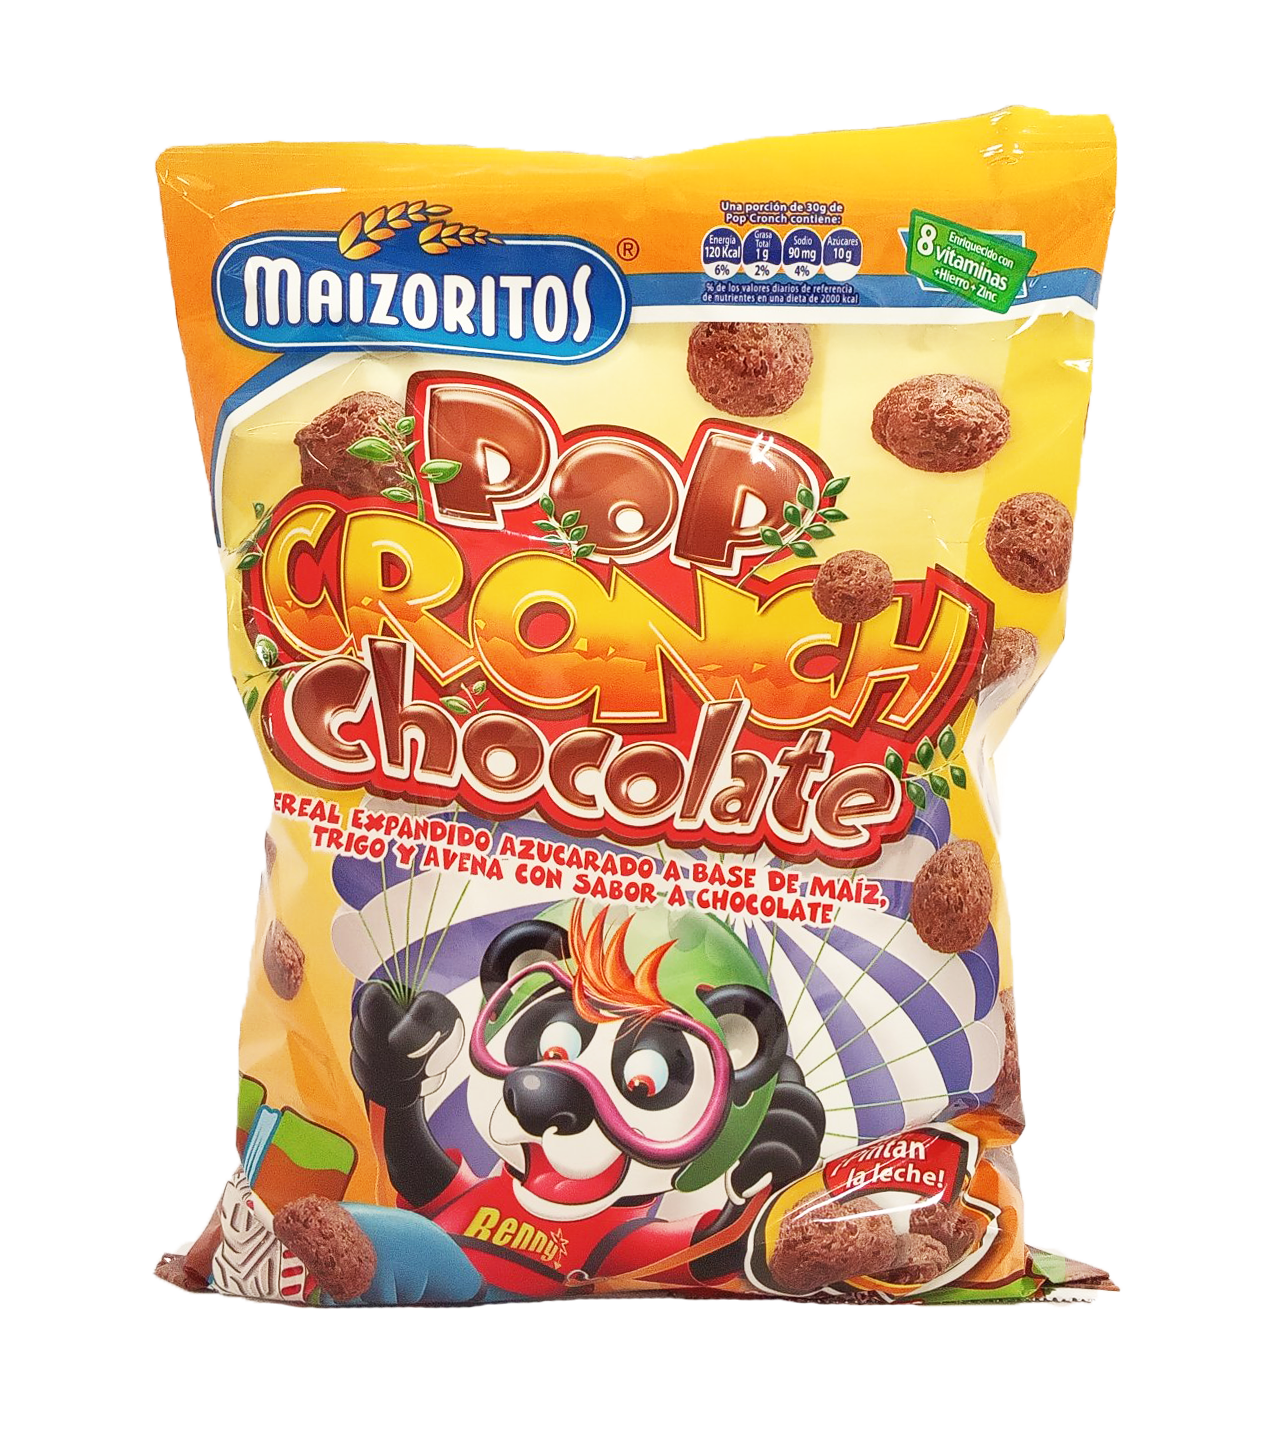 MAIZORITOS POP CRONCH CHOCOLATE 240GR